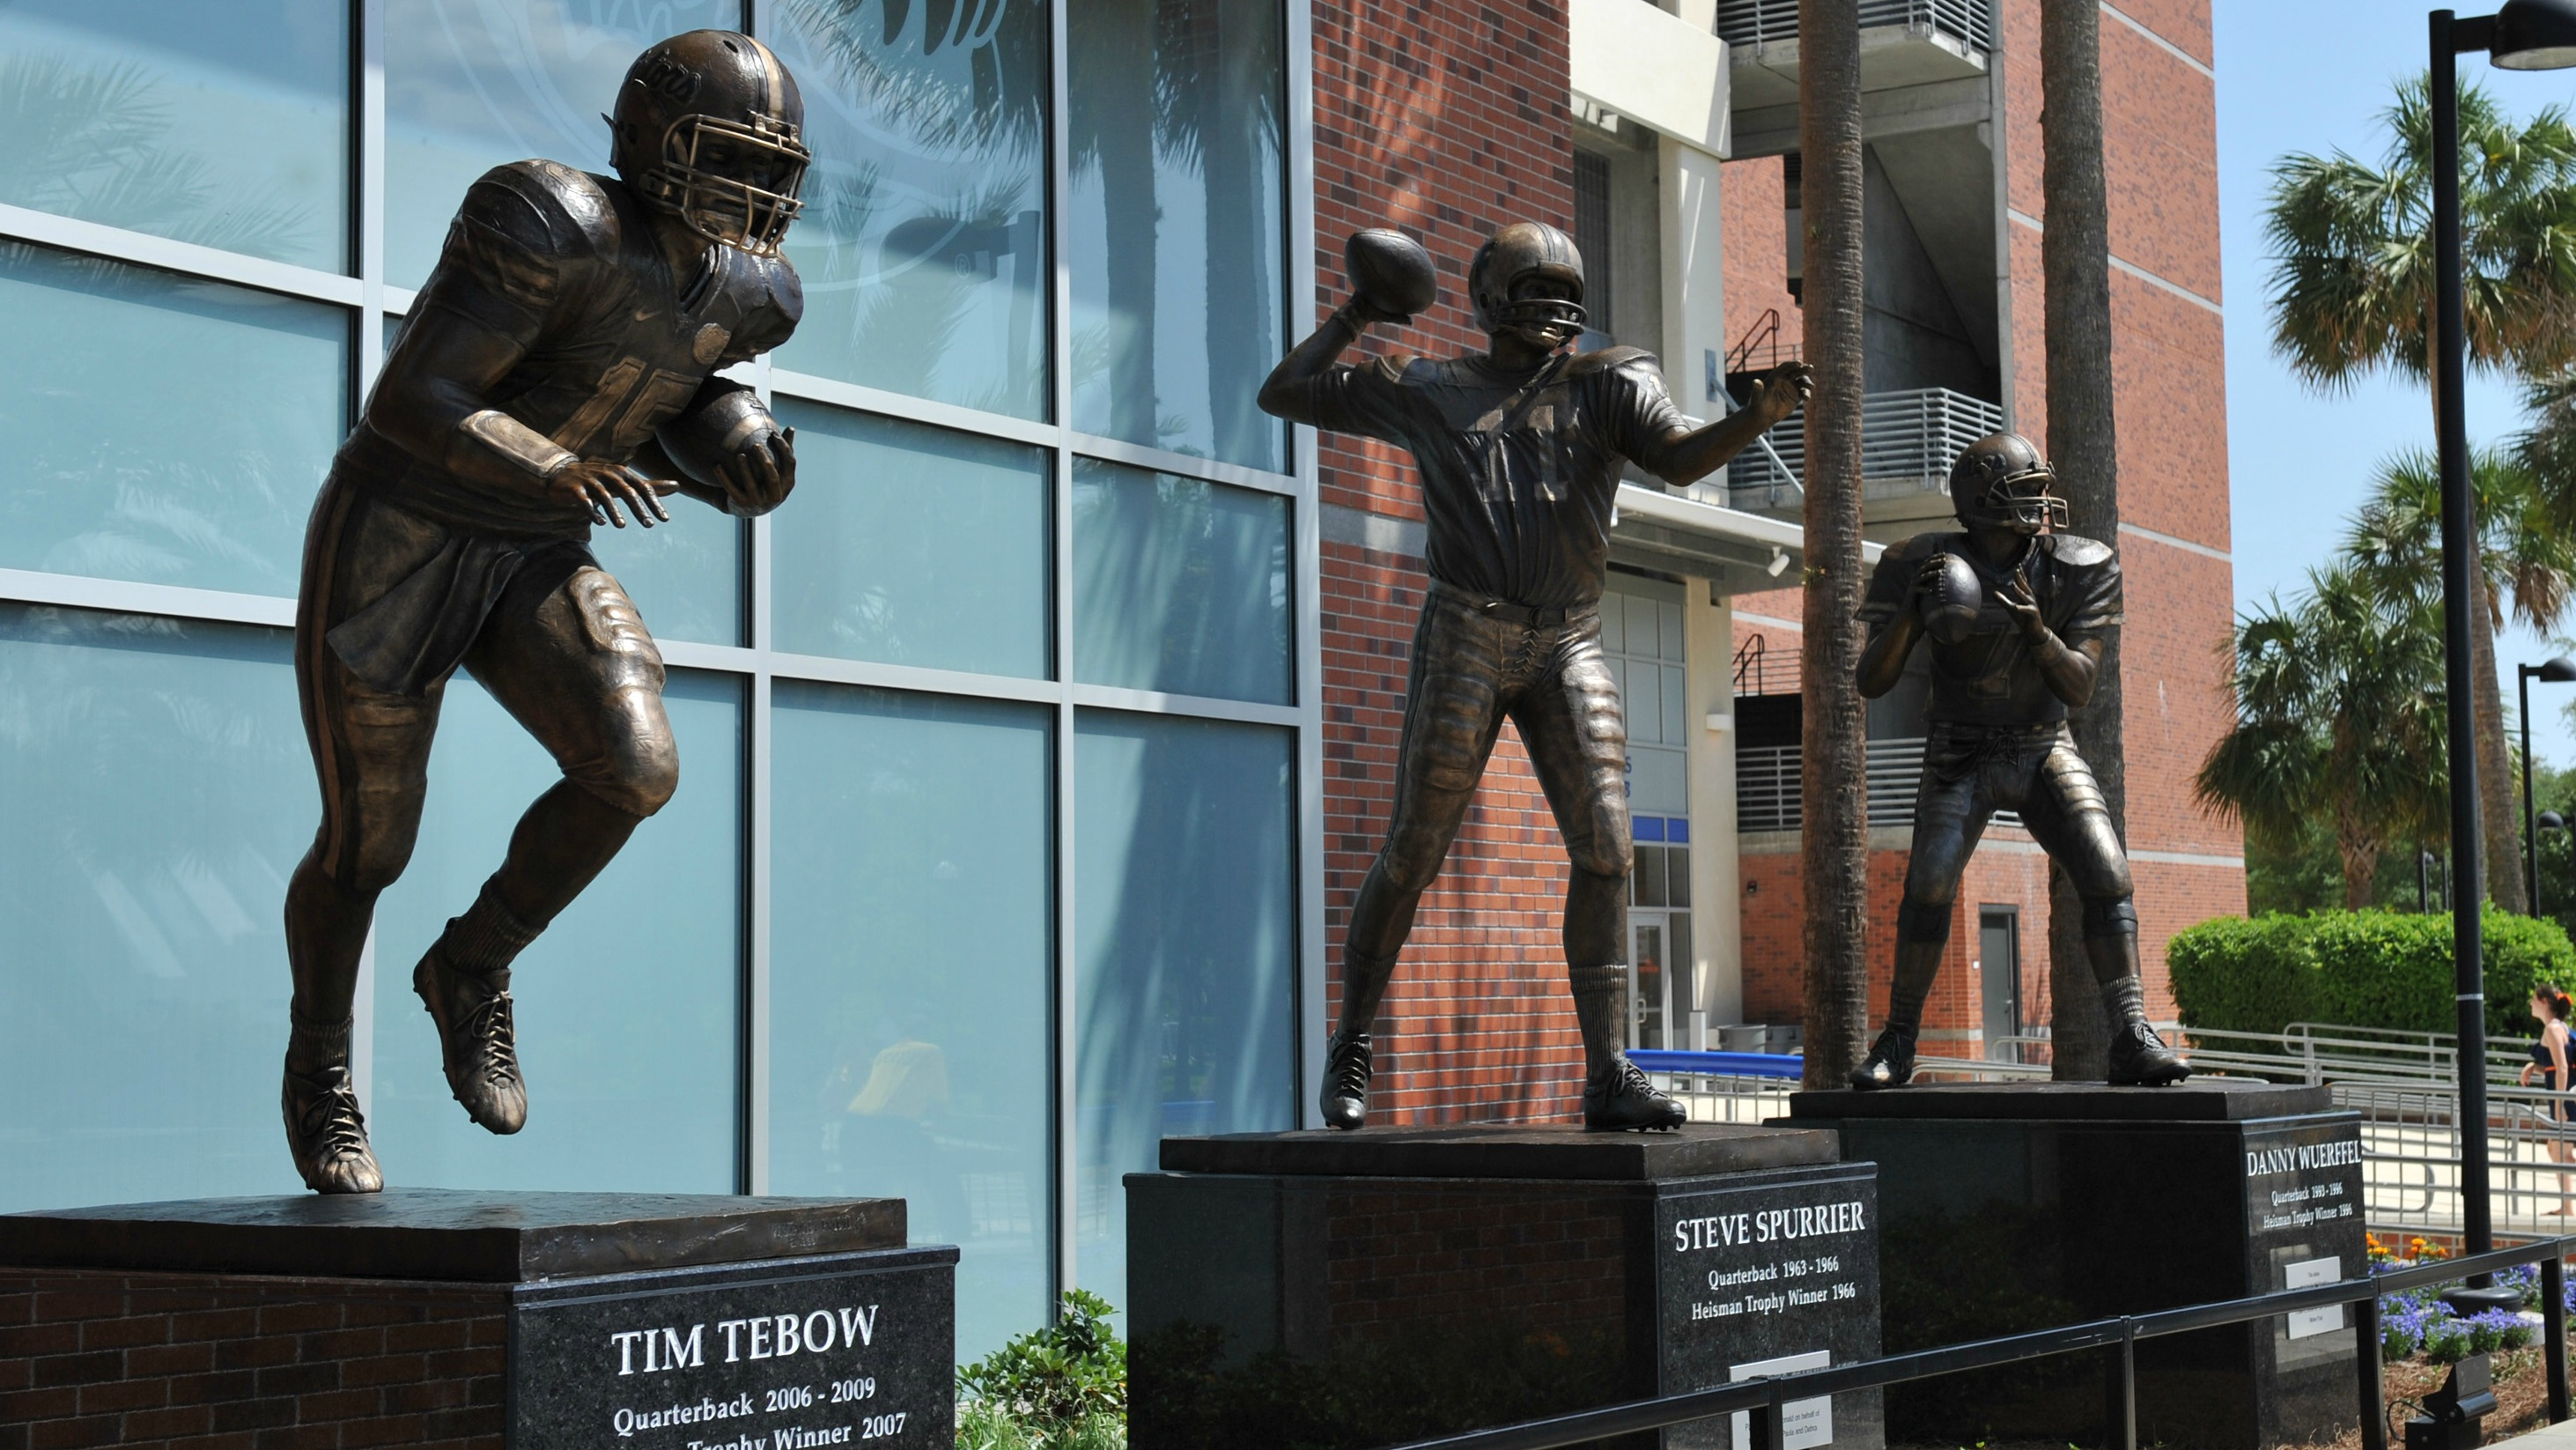 Steve Spurrier won the Heisman as a Florida player, then led UF to a title as head coach.